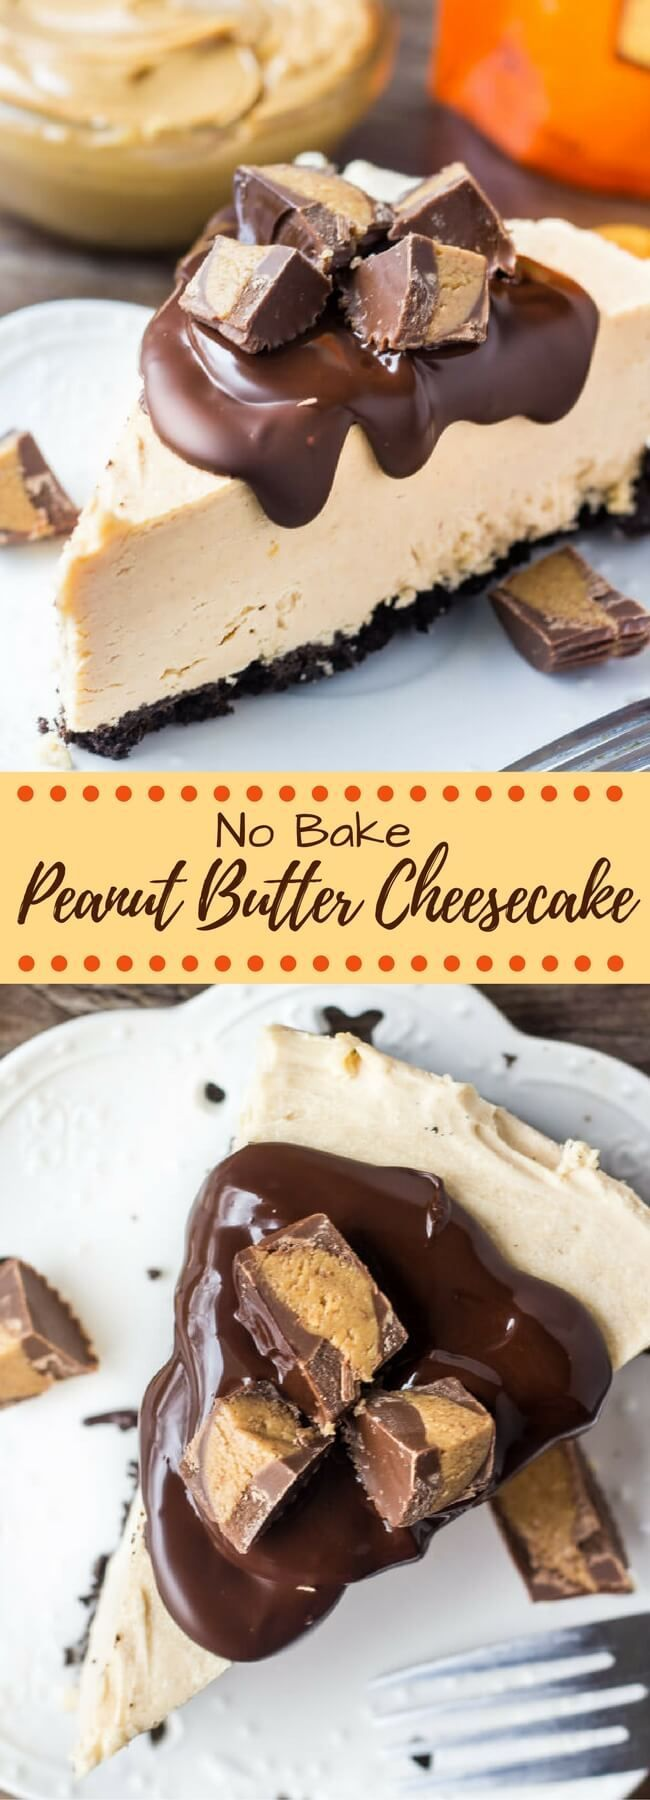 Bake Peanut Butter Cheesecake This no bake peanut butter cheesecake has an Oreo cookie crust, creamy peanut butter flavor, and Reese's peanut butter cups. So easy and only 15 minutes to make!This no bake peanut butter cheesecake has an Oreo cookie crust, creamy peanut butter flavor, and Reese's peanut butter cups. So easy and only 15 minutes to make!